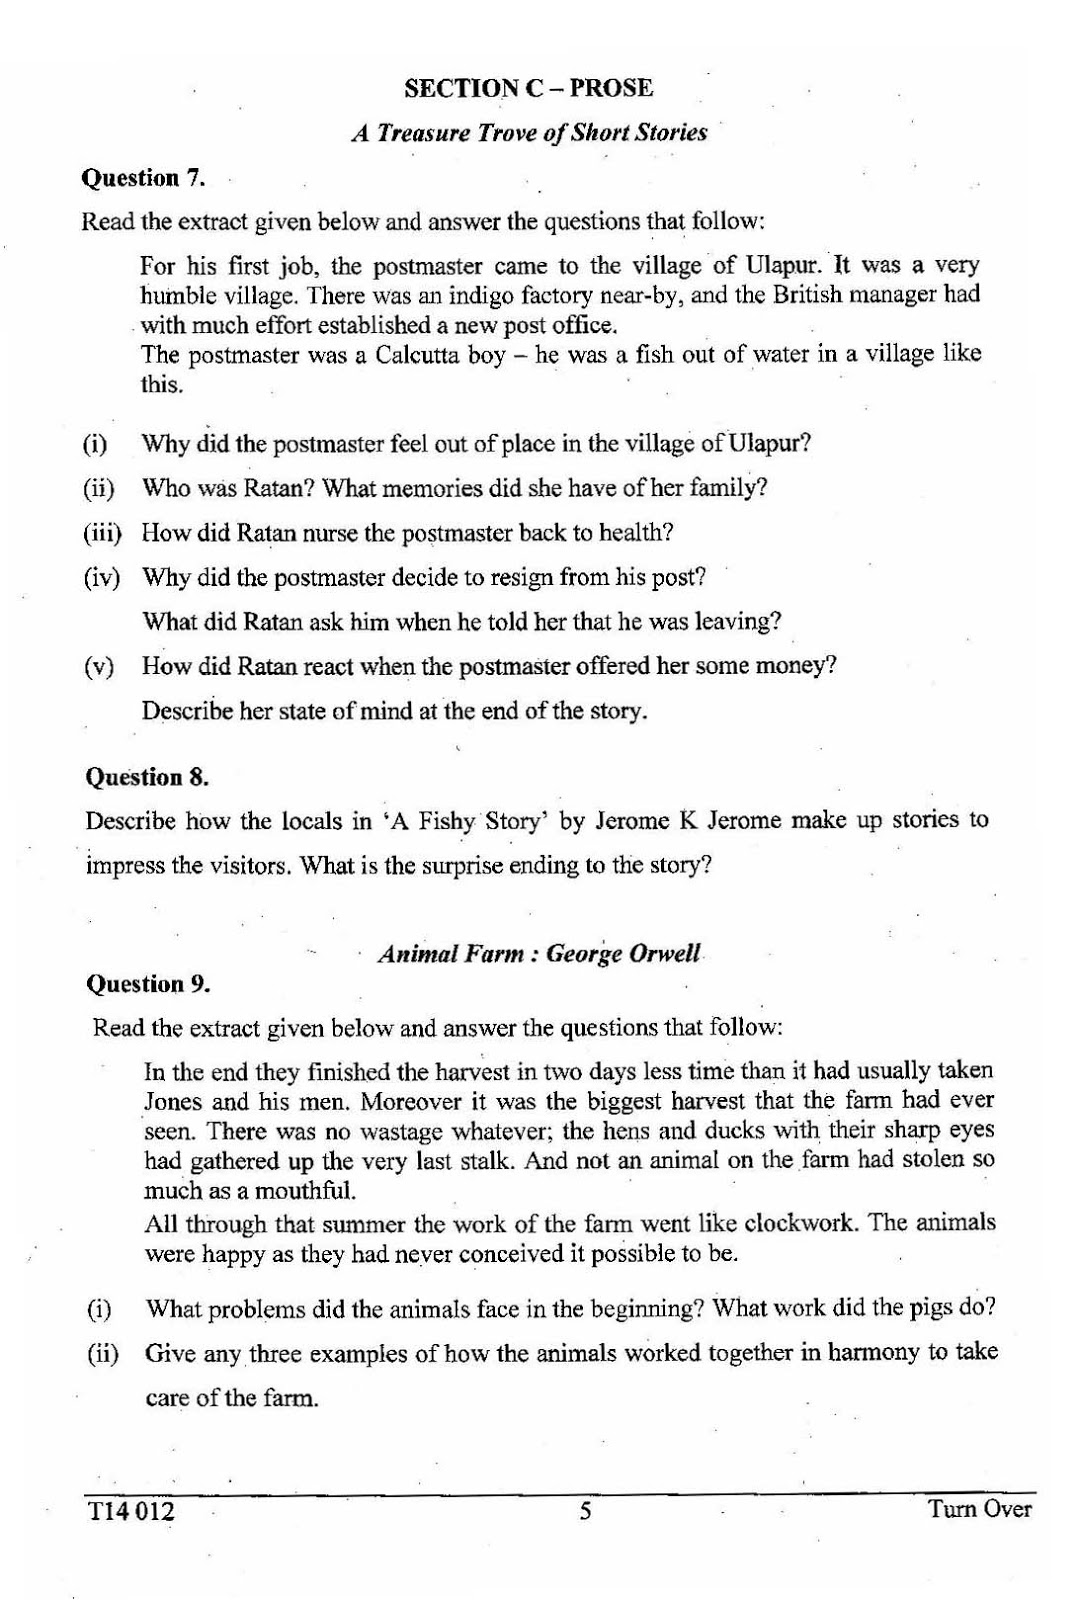 Icse class 10th English literature solved question paper 2014